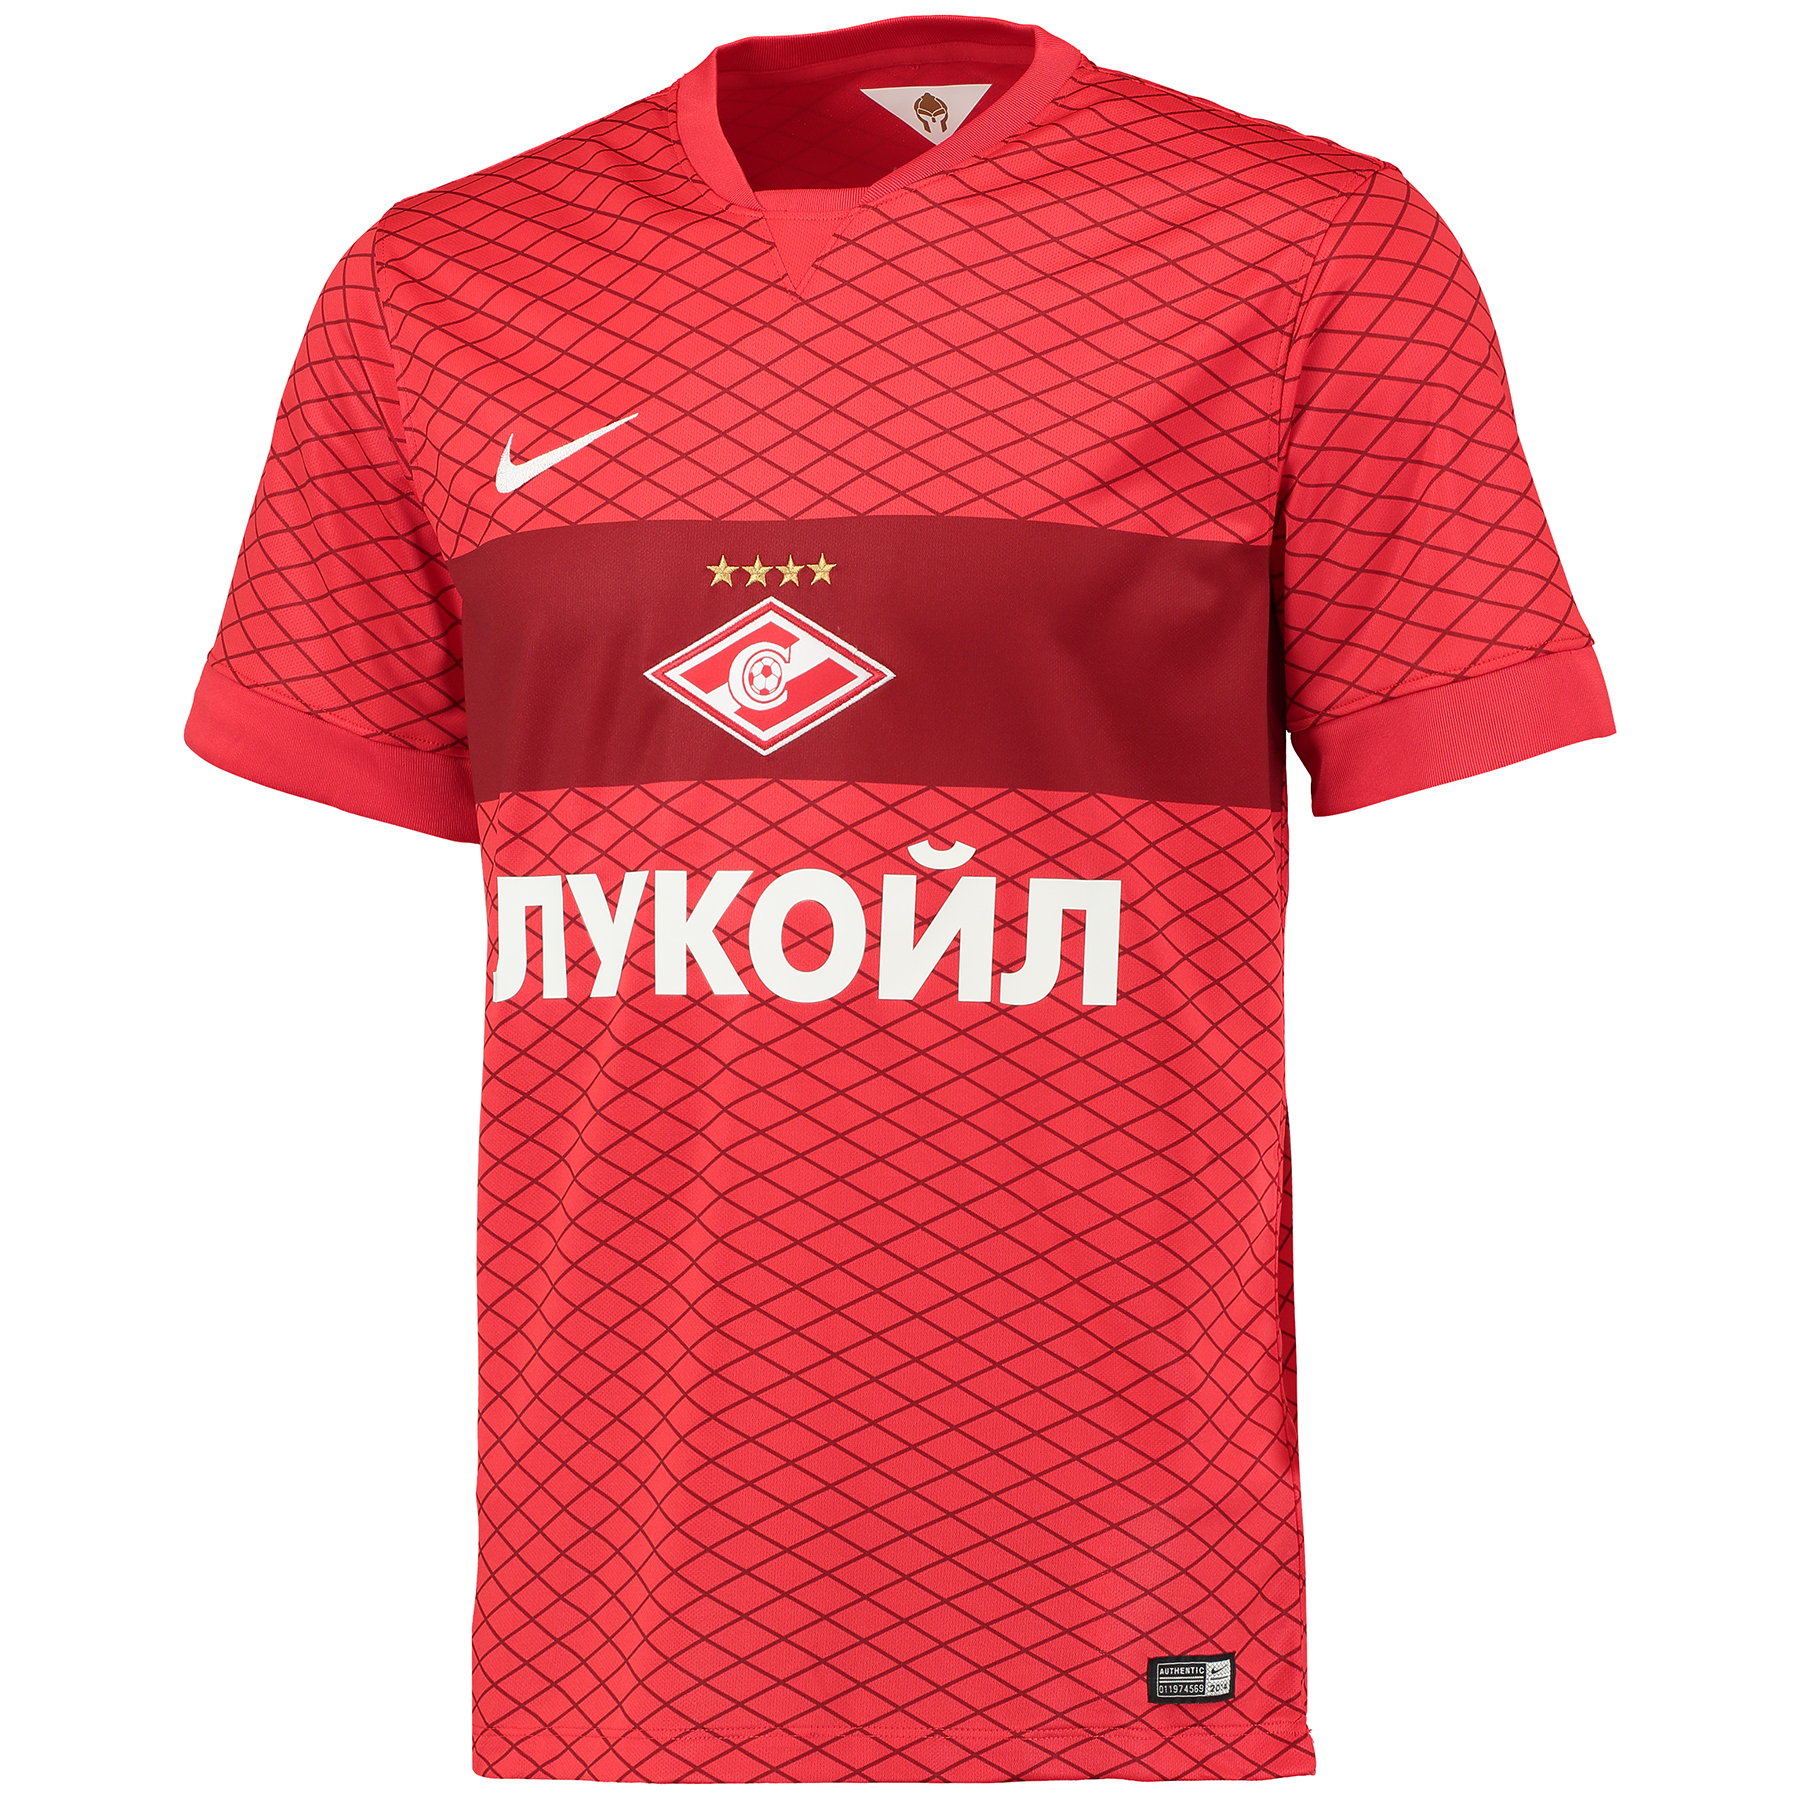 Spartak Moscow Home Shirt 2014/15 Red